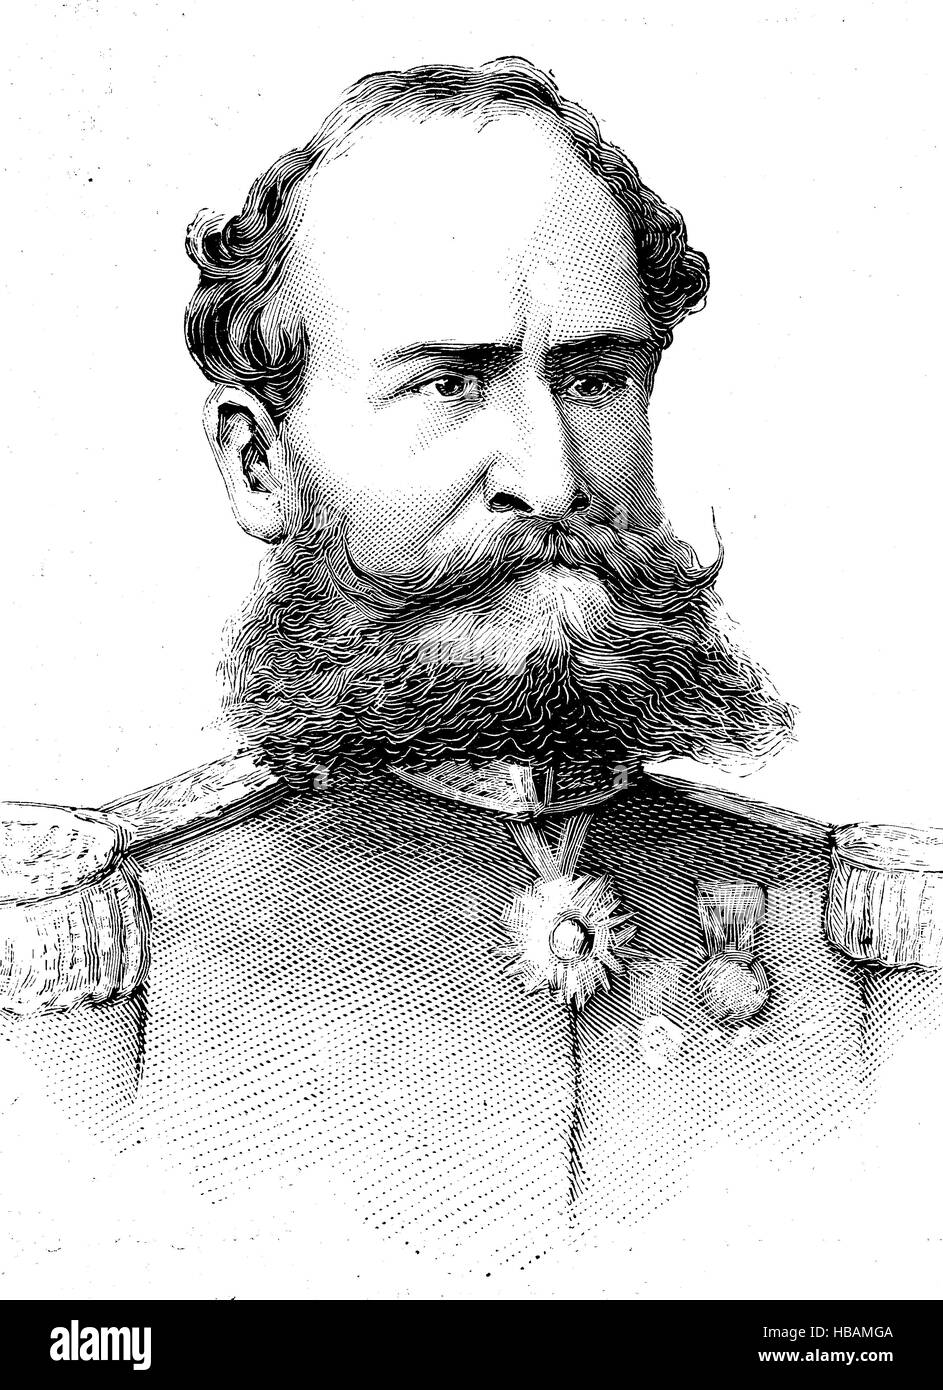 Manuel Deodoro da Fonseca, 1827 - 23 August 1892, was a Brazilian politician and military officer who served as - Stock Image